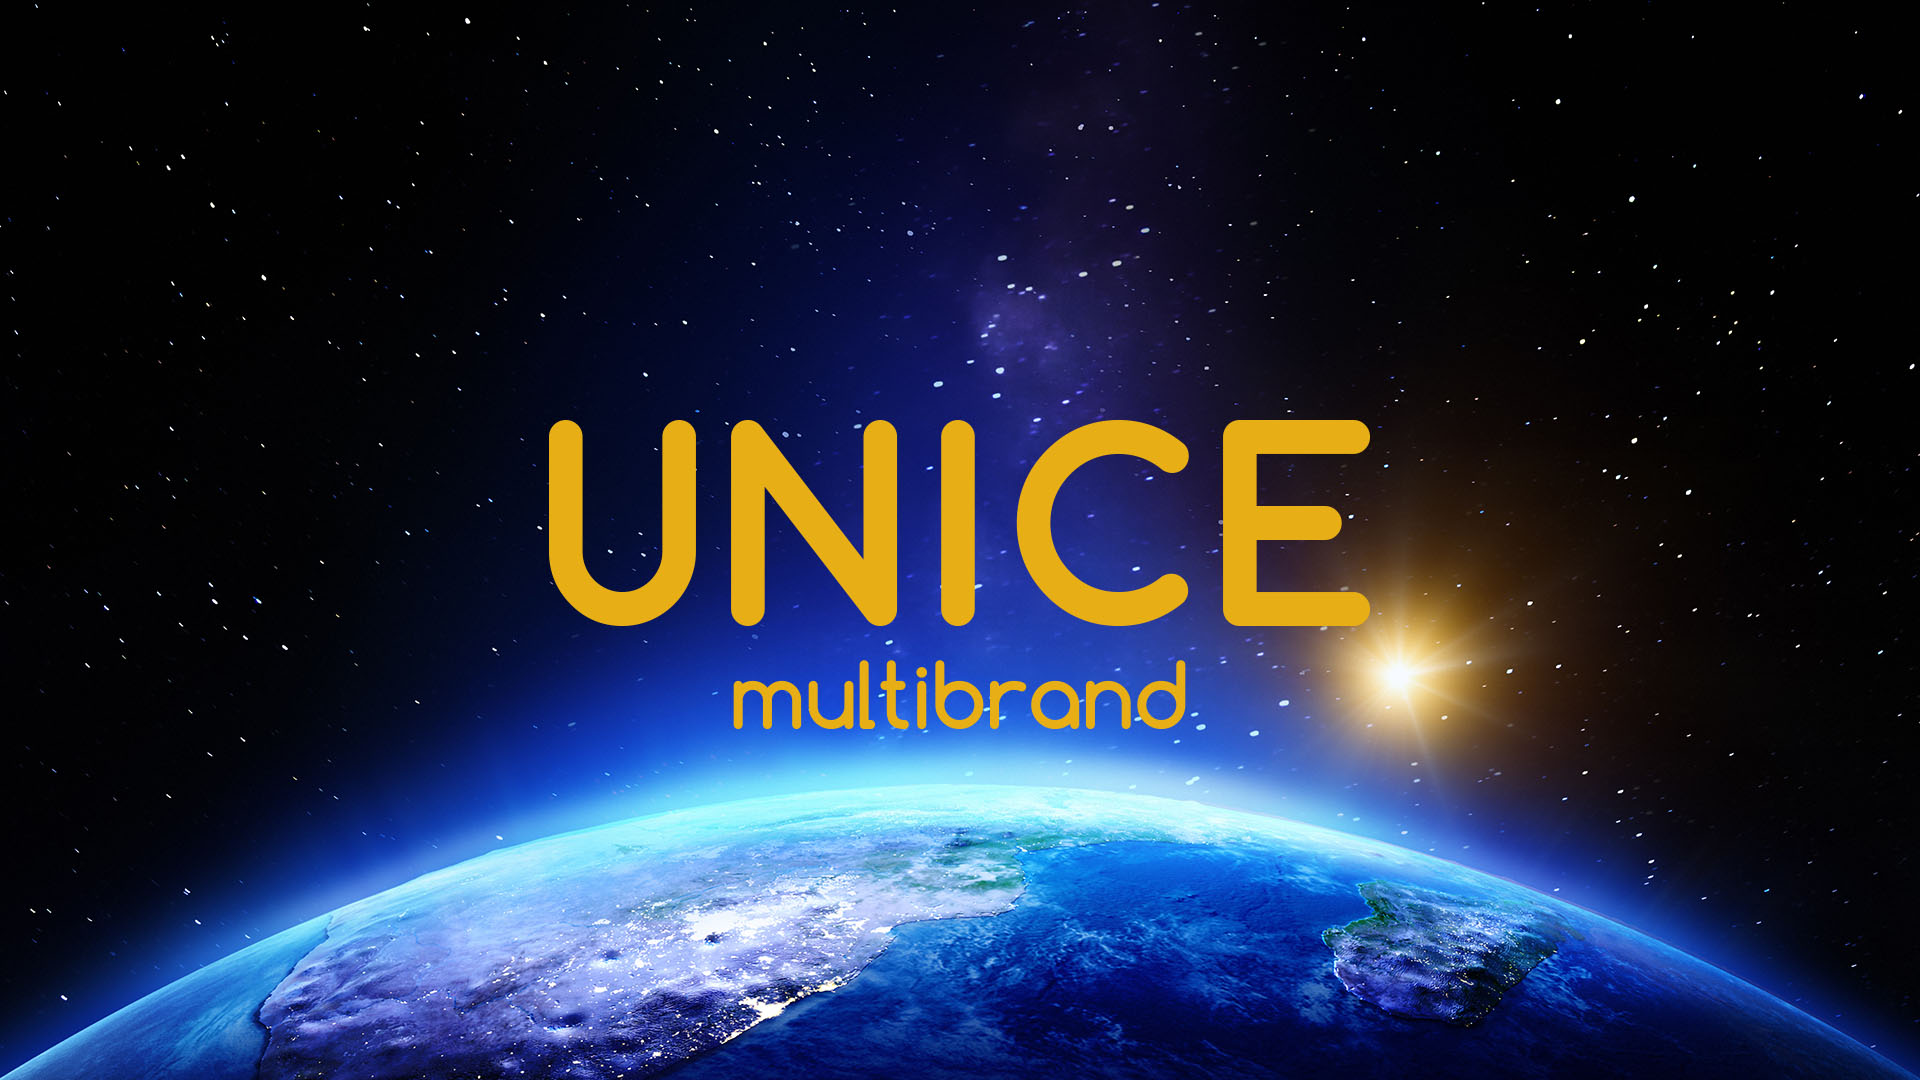 О компании UNICE multibrand